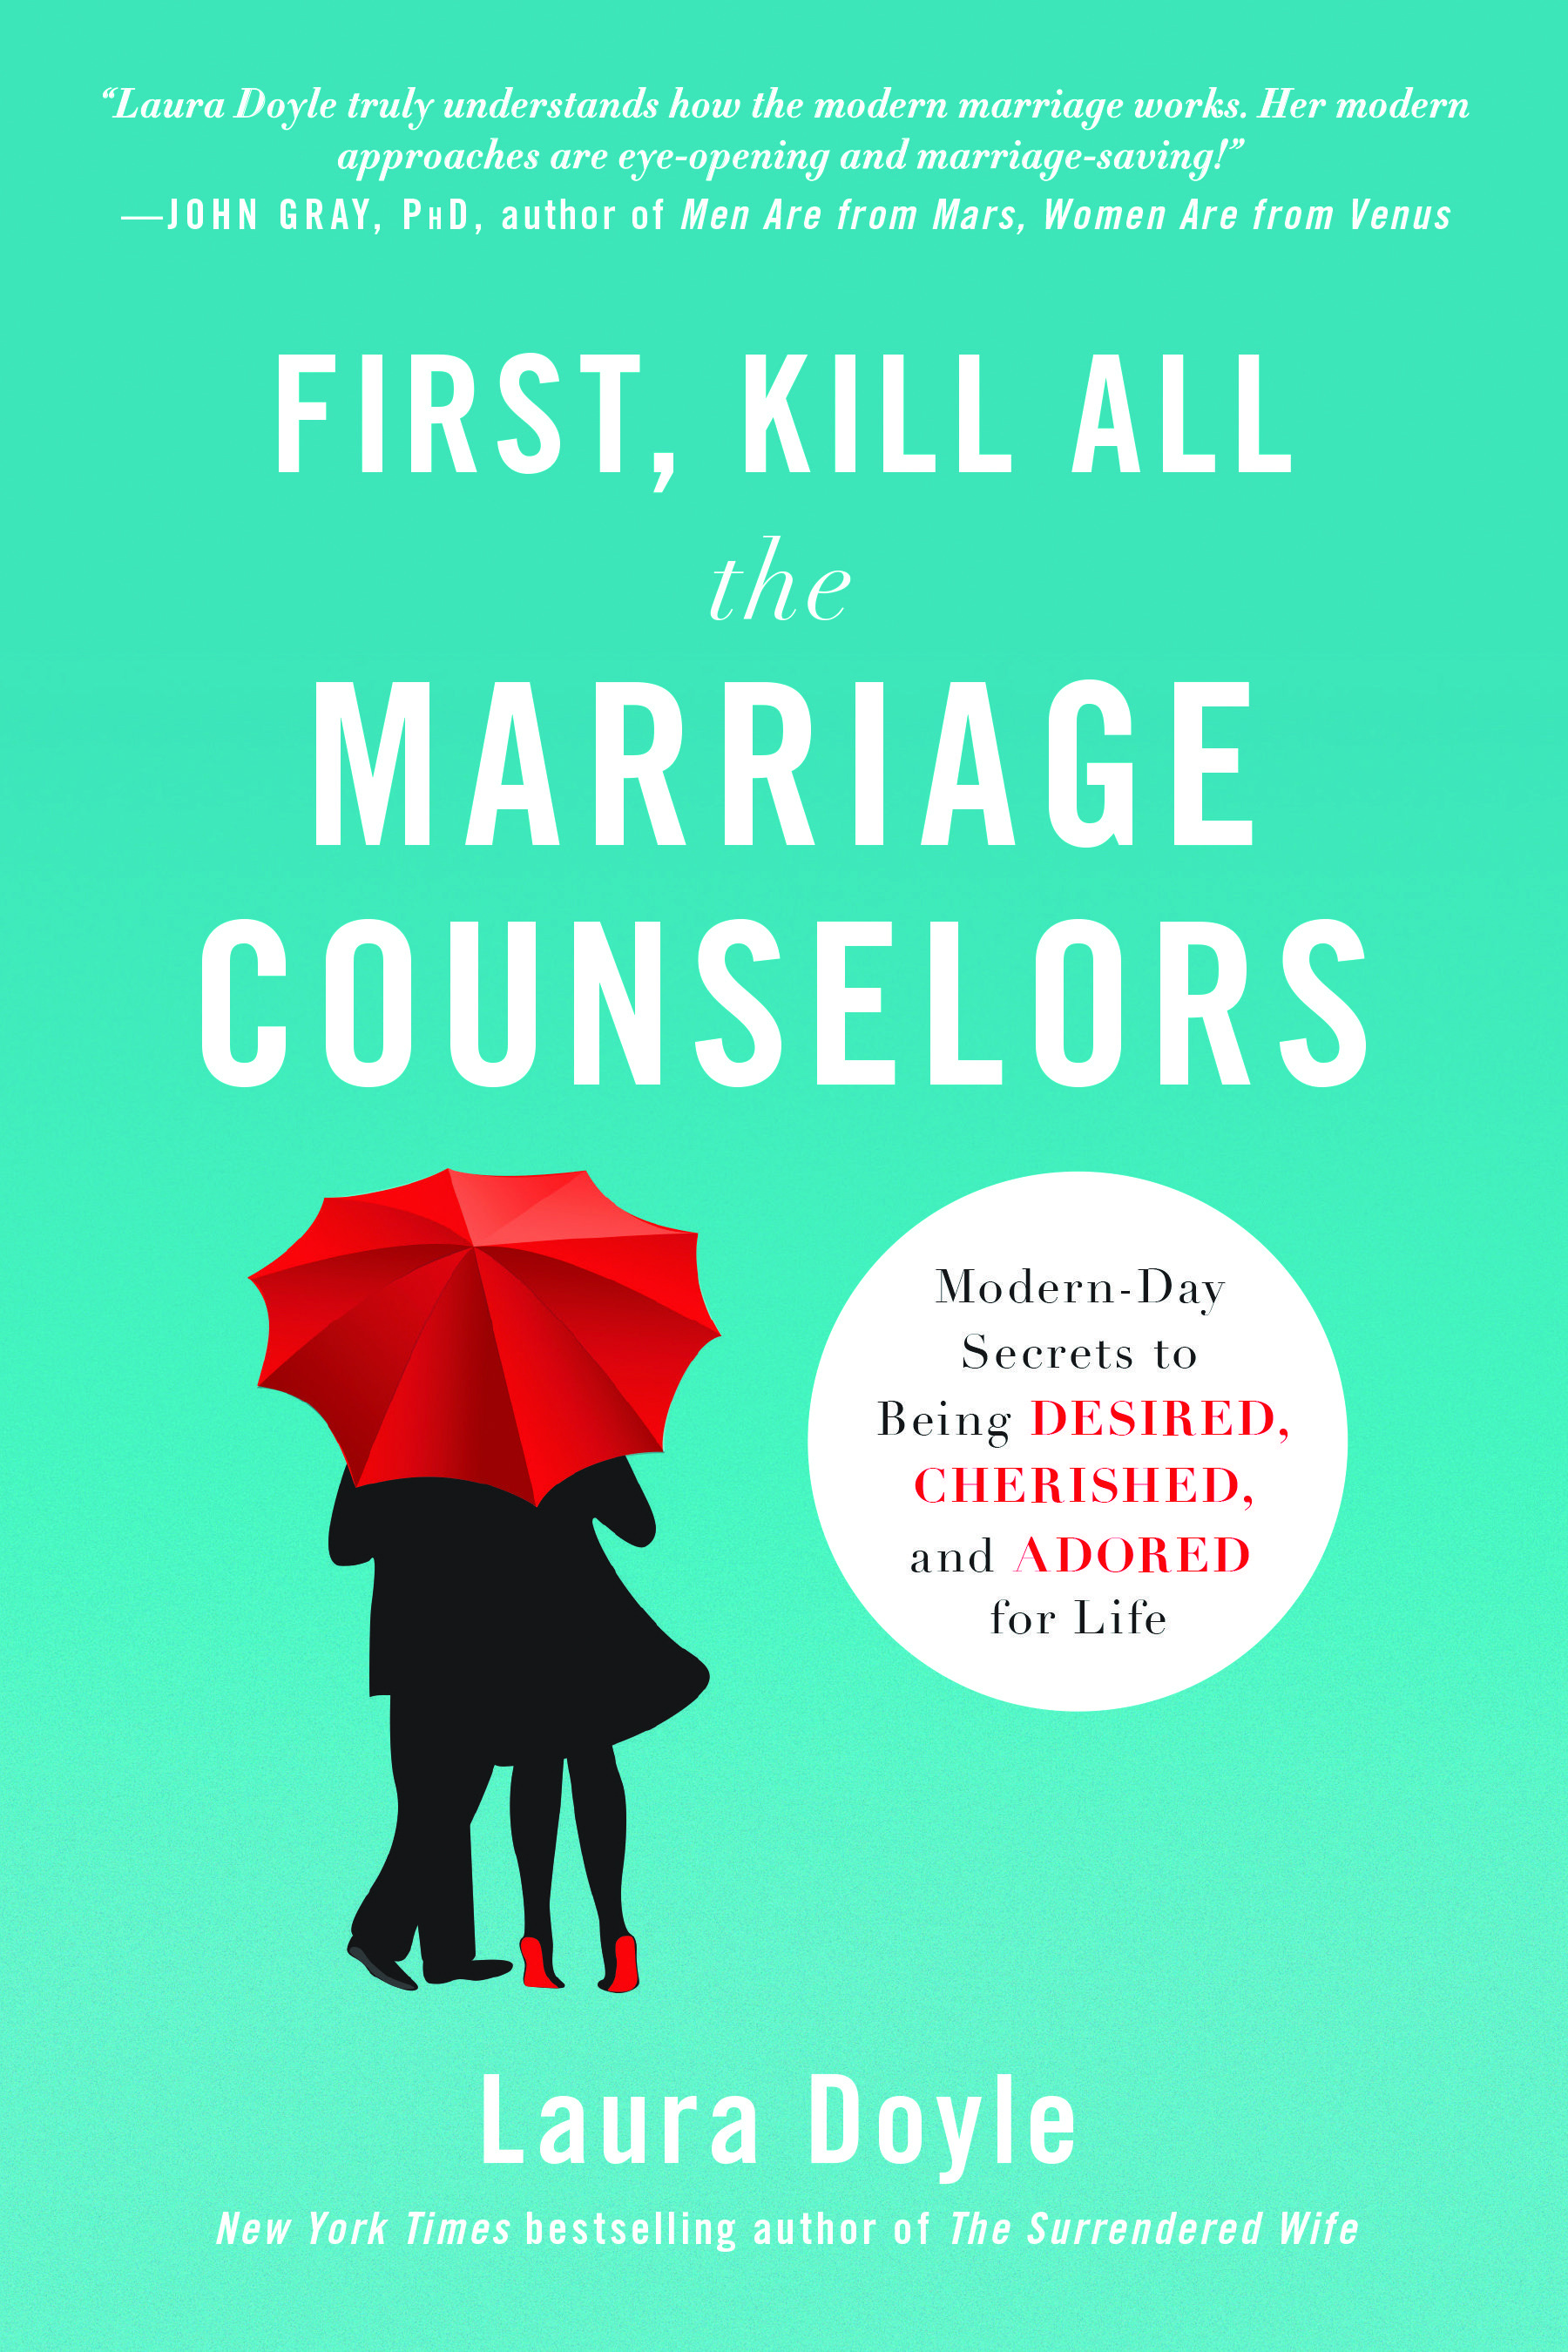 Therapy Counseling marriage counseling Marriage